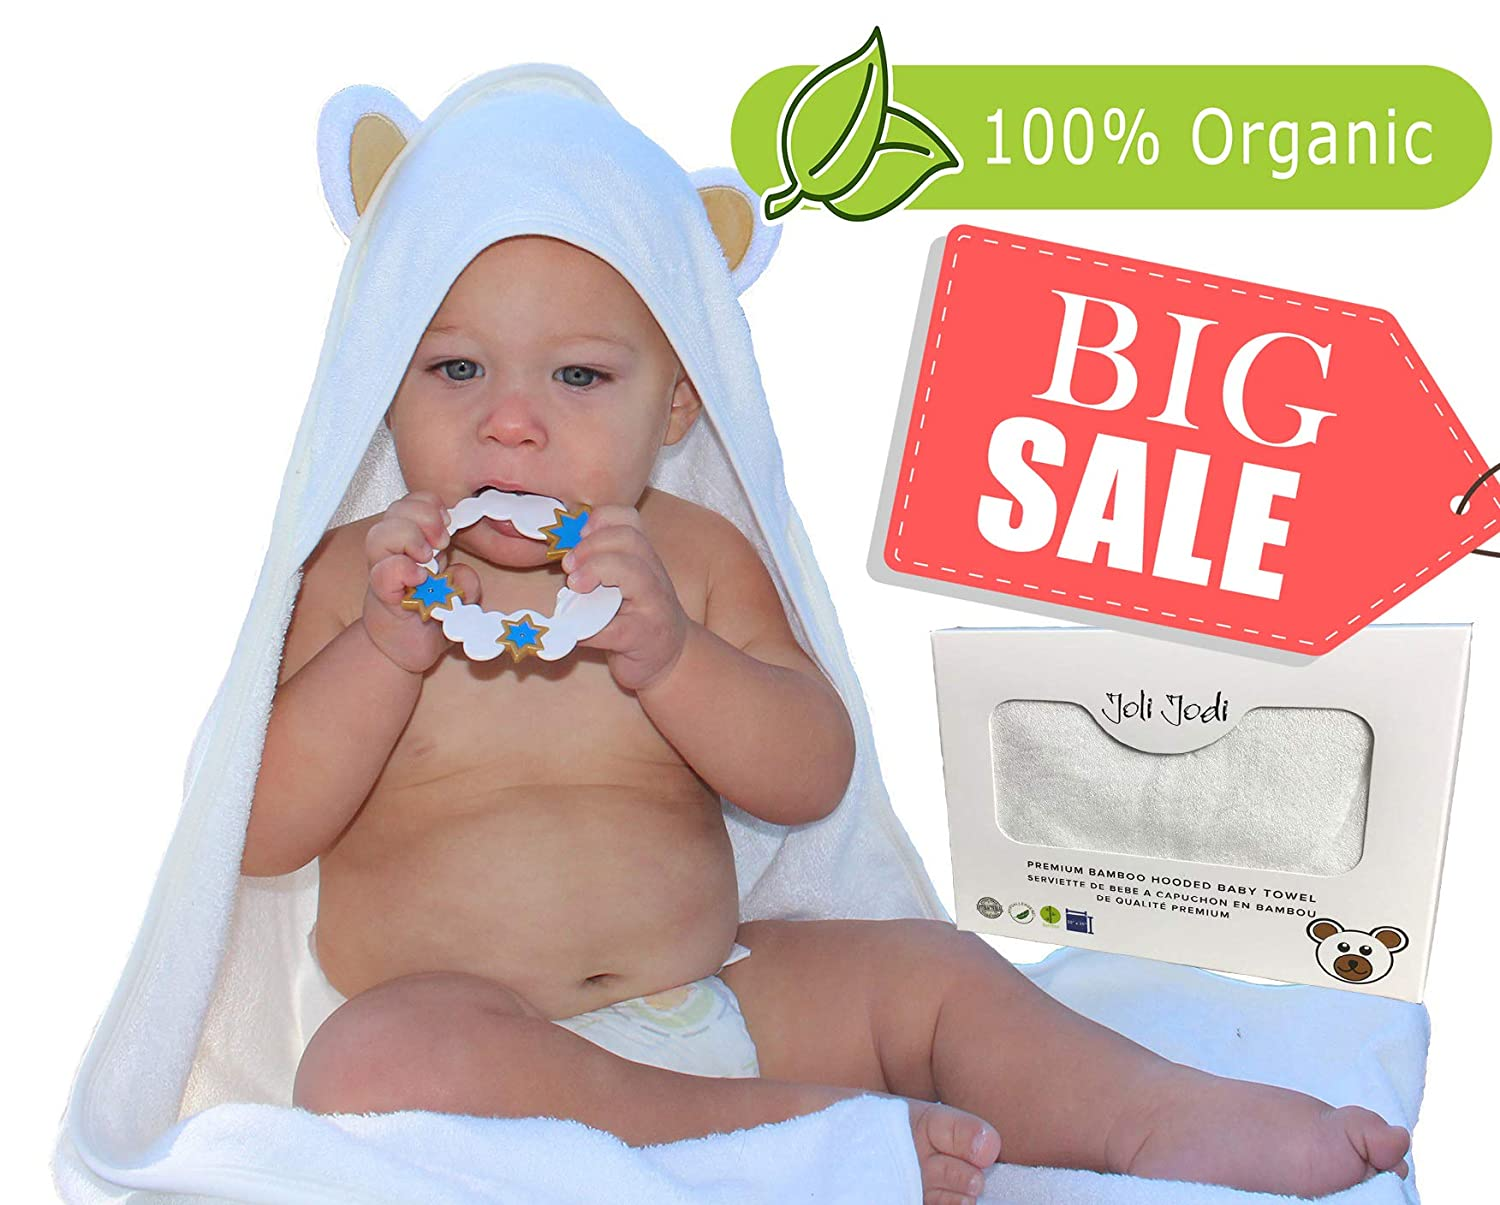 Joli Jodi Organic Extra Soft Bamboo Hooded Baby Towel |Beach and Bath Towel |Antibacterial and Hypoallergenic| Highly Absorbent & Sized for Infant and Toddler(90 * 90 CM) | 500 GSM | Acadook Technology Inc